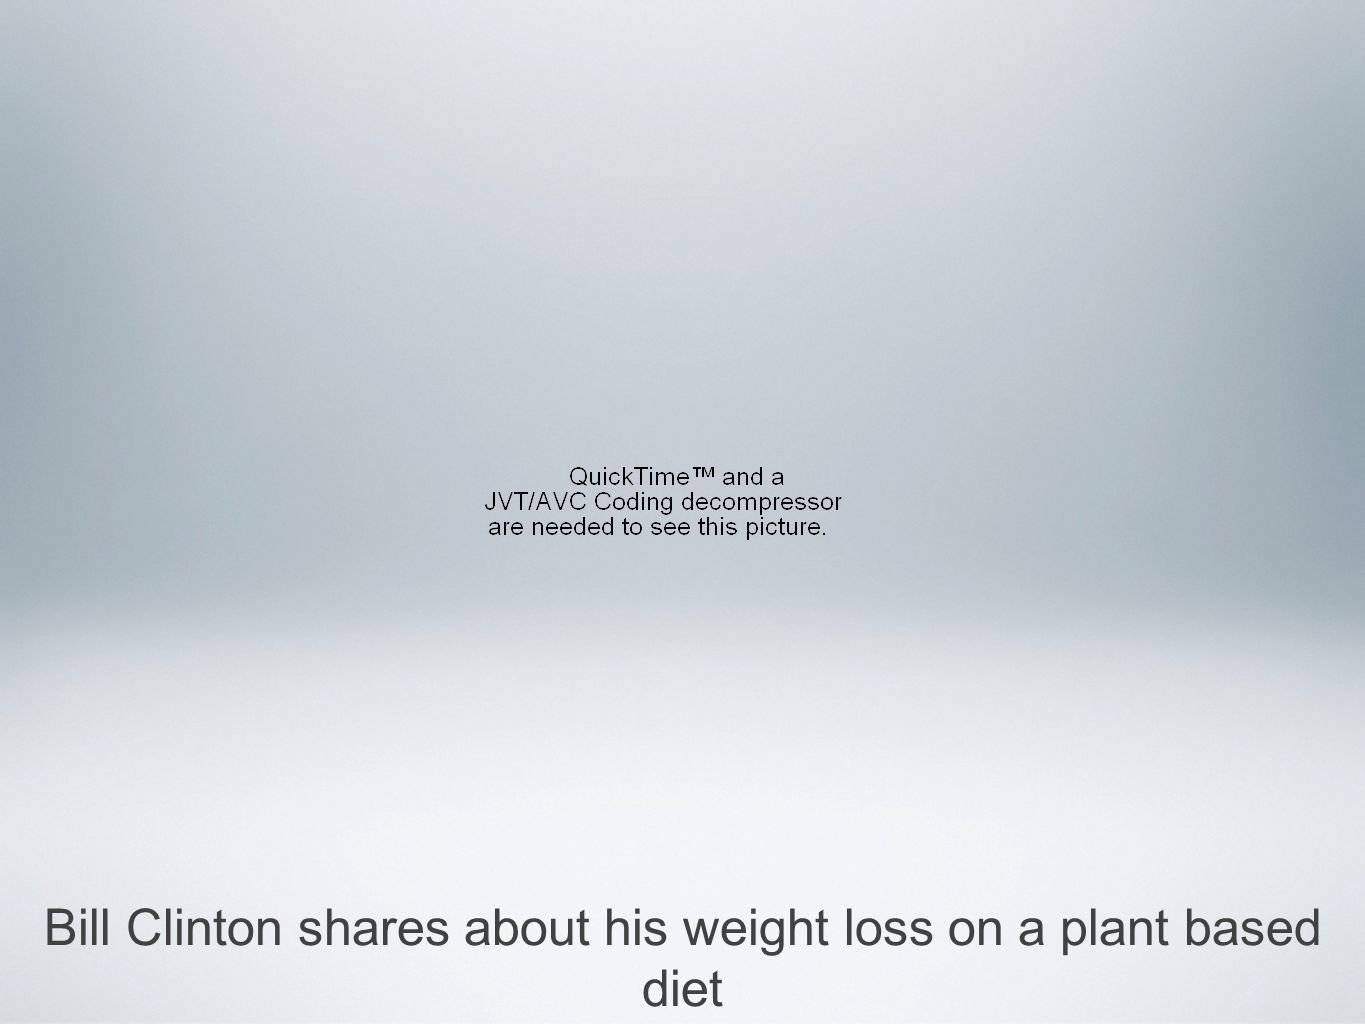 Bill Clinton shares about his weight loss on a plant based diet